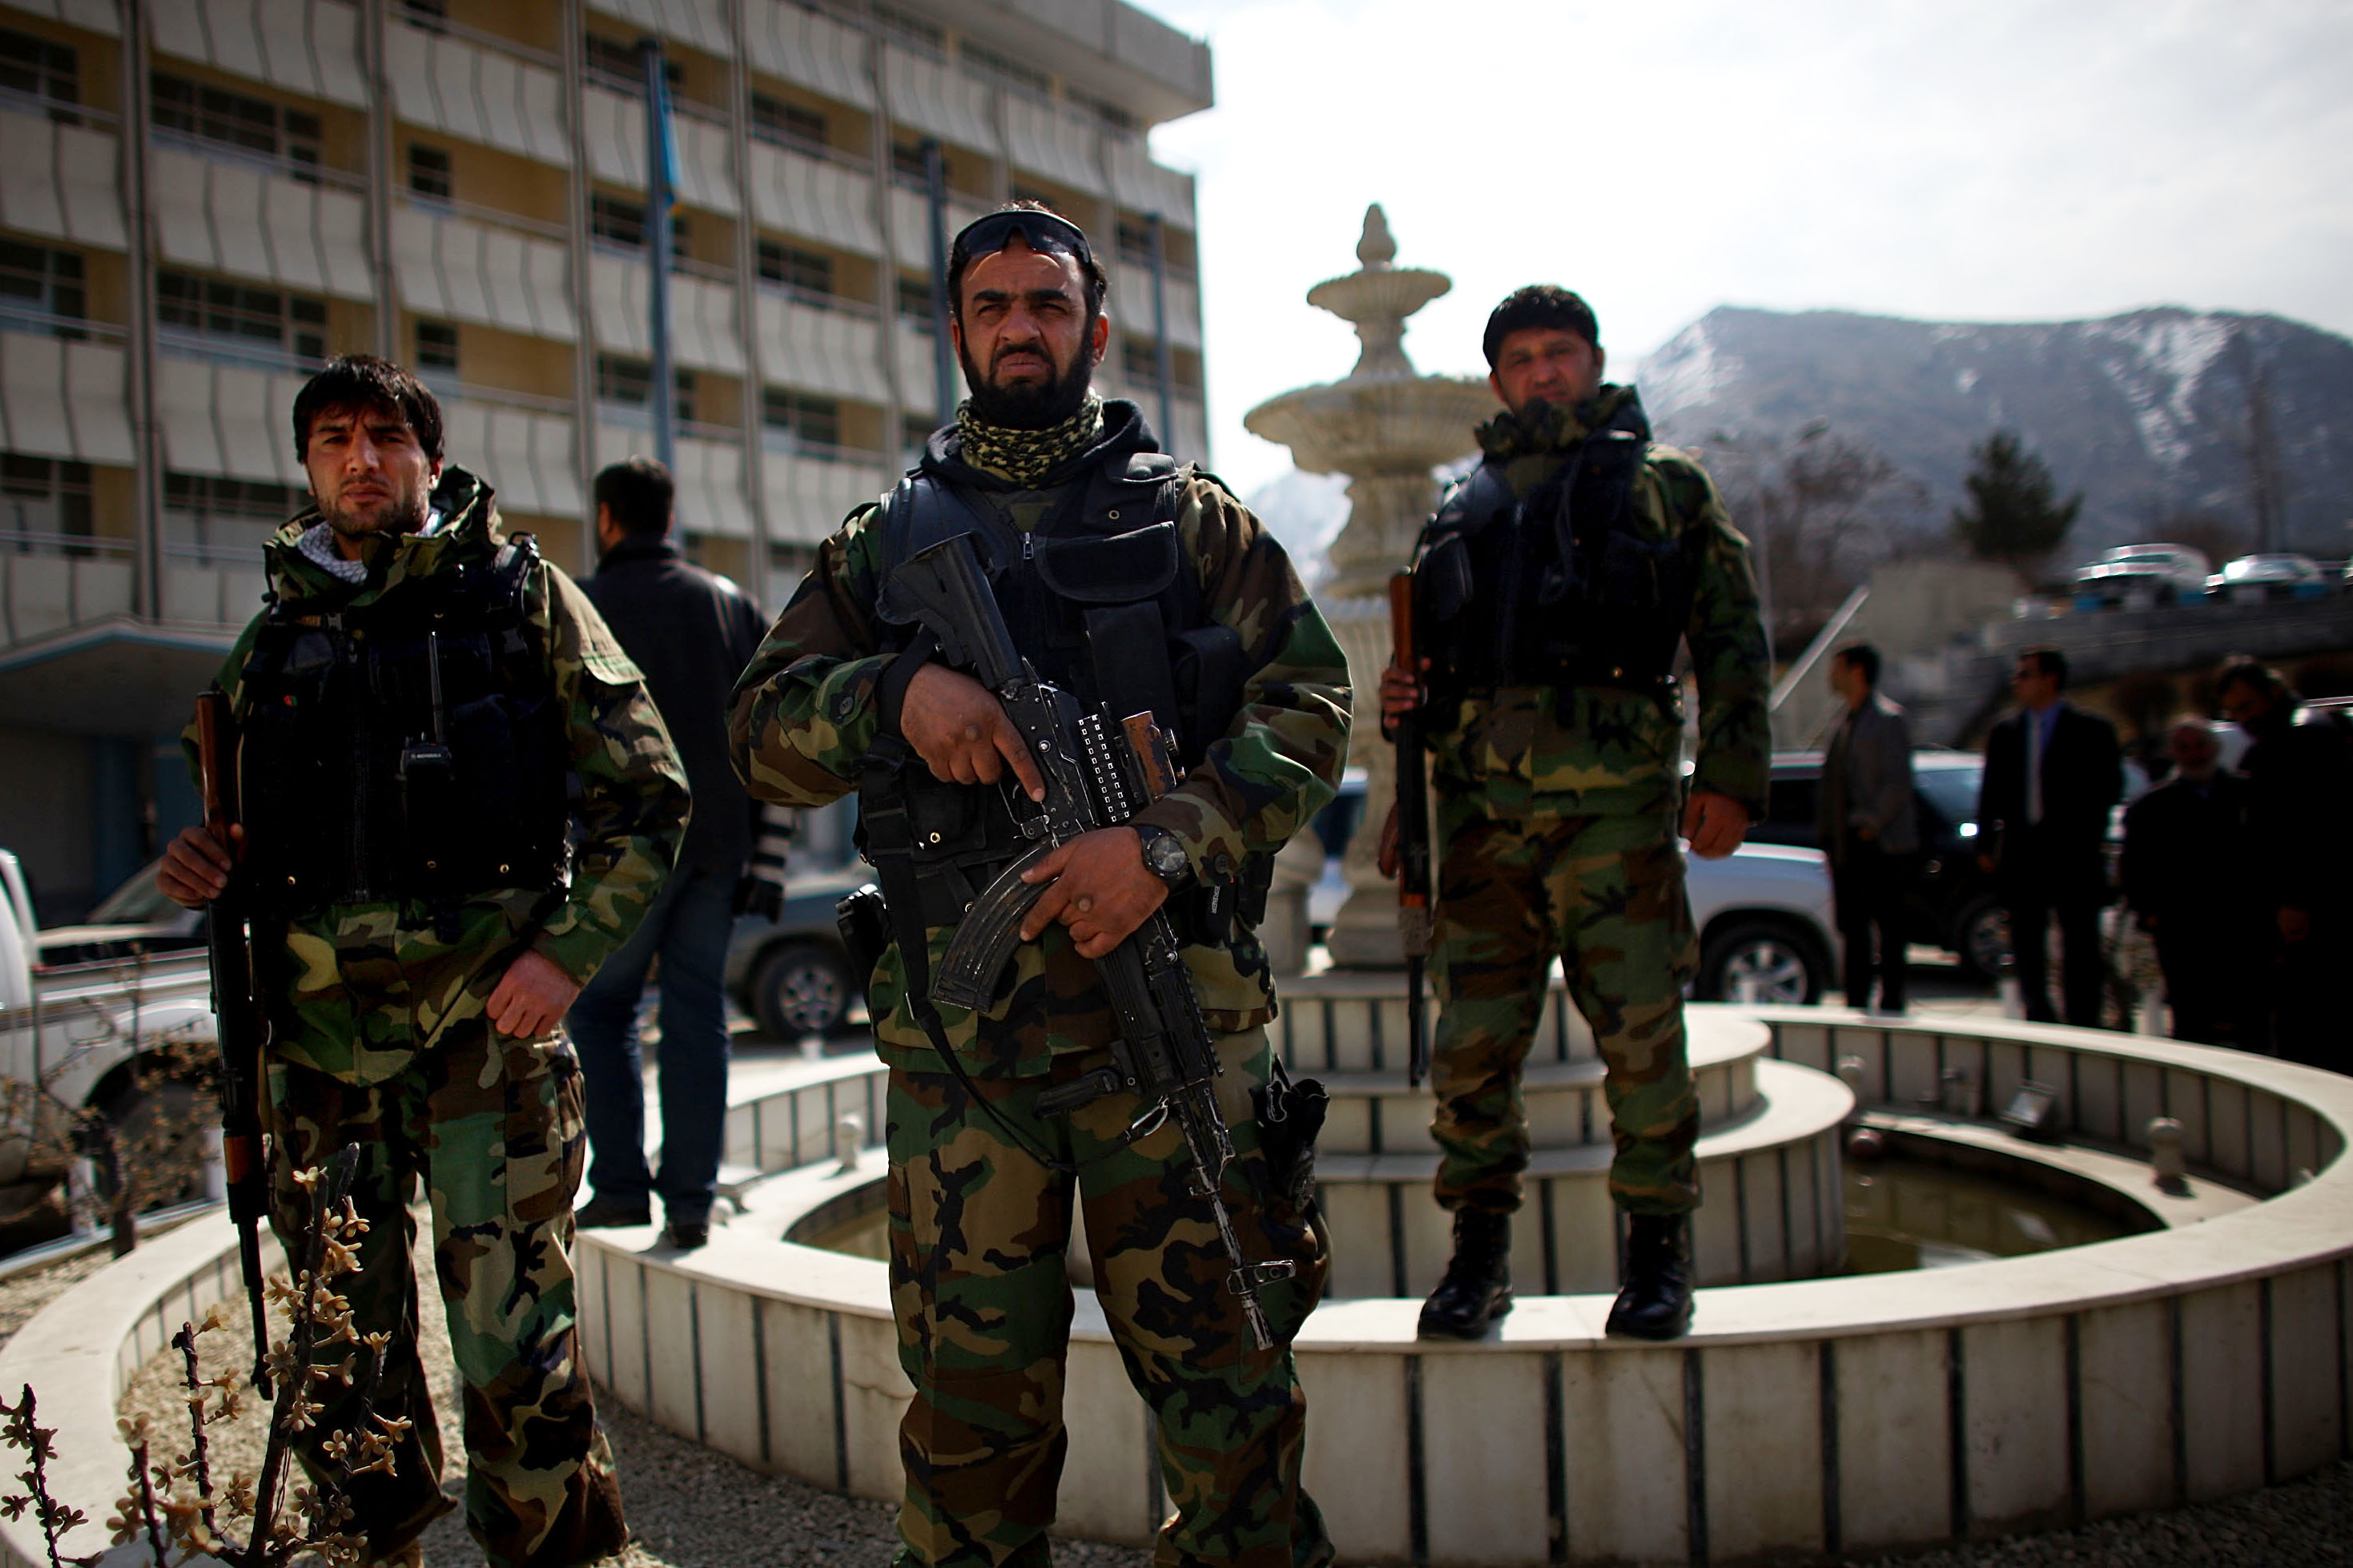 Afghan National Security Forces stand guard outside of the hotel in Kabul during the campaign event for Rassoul.